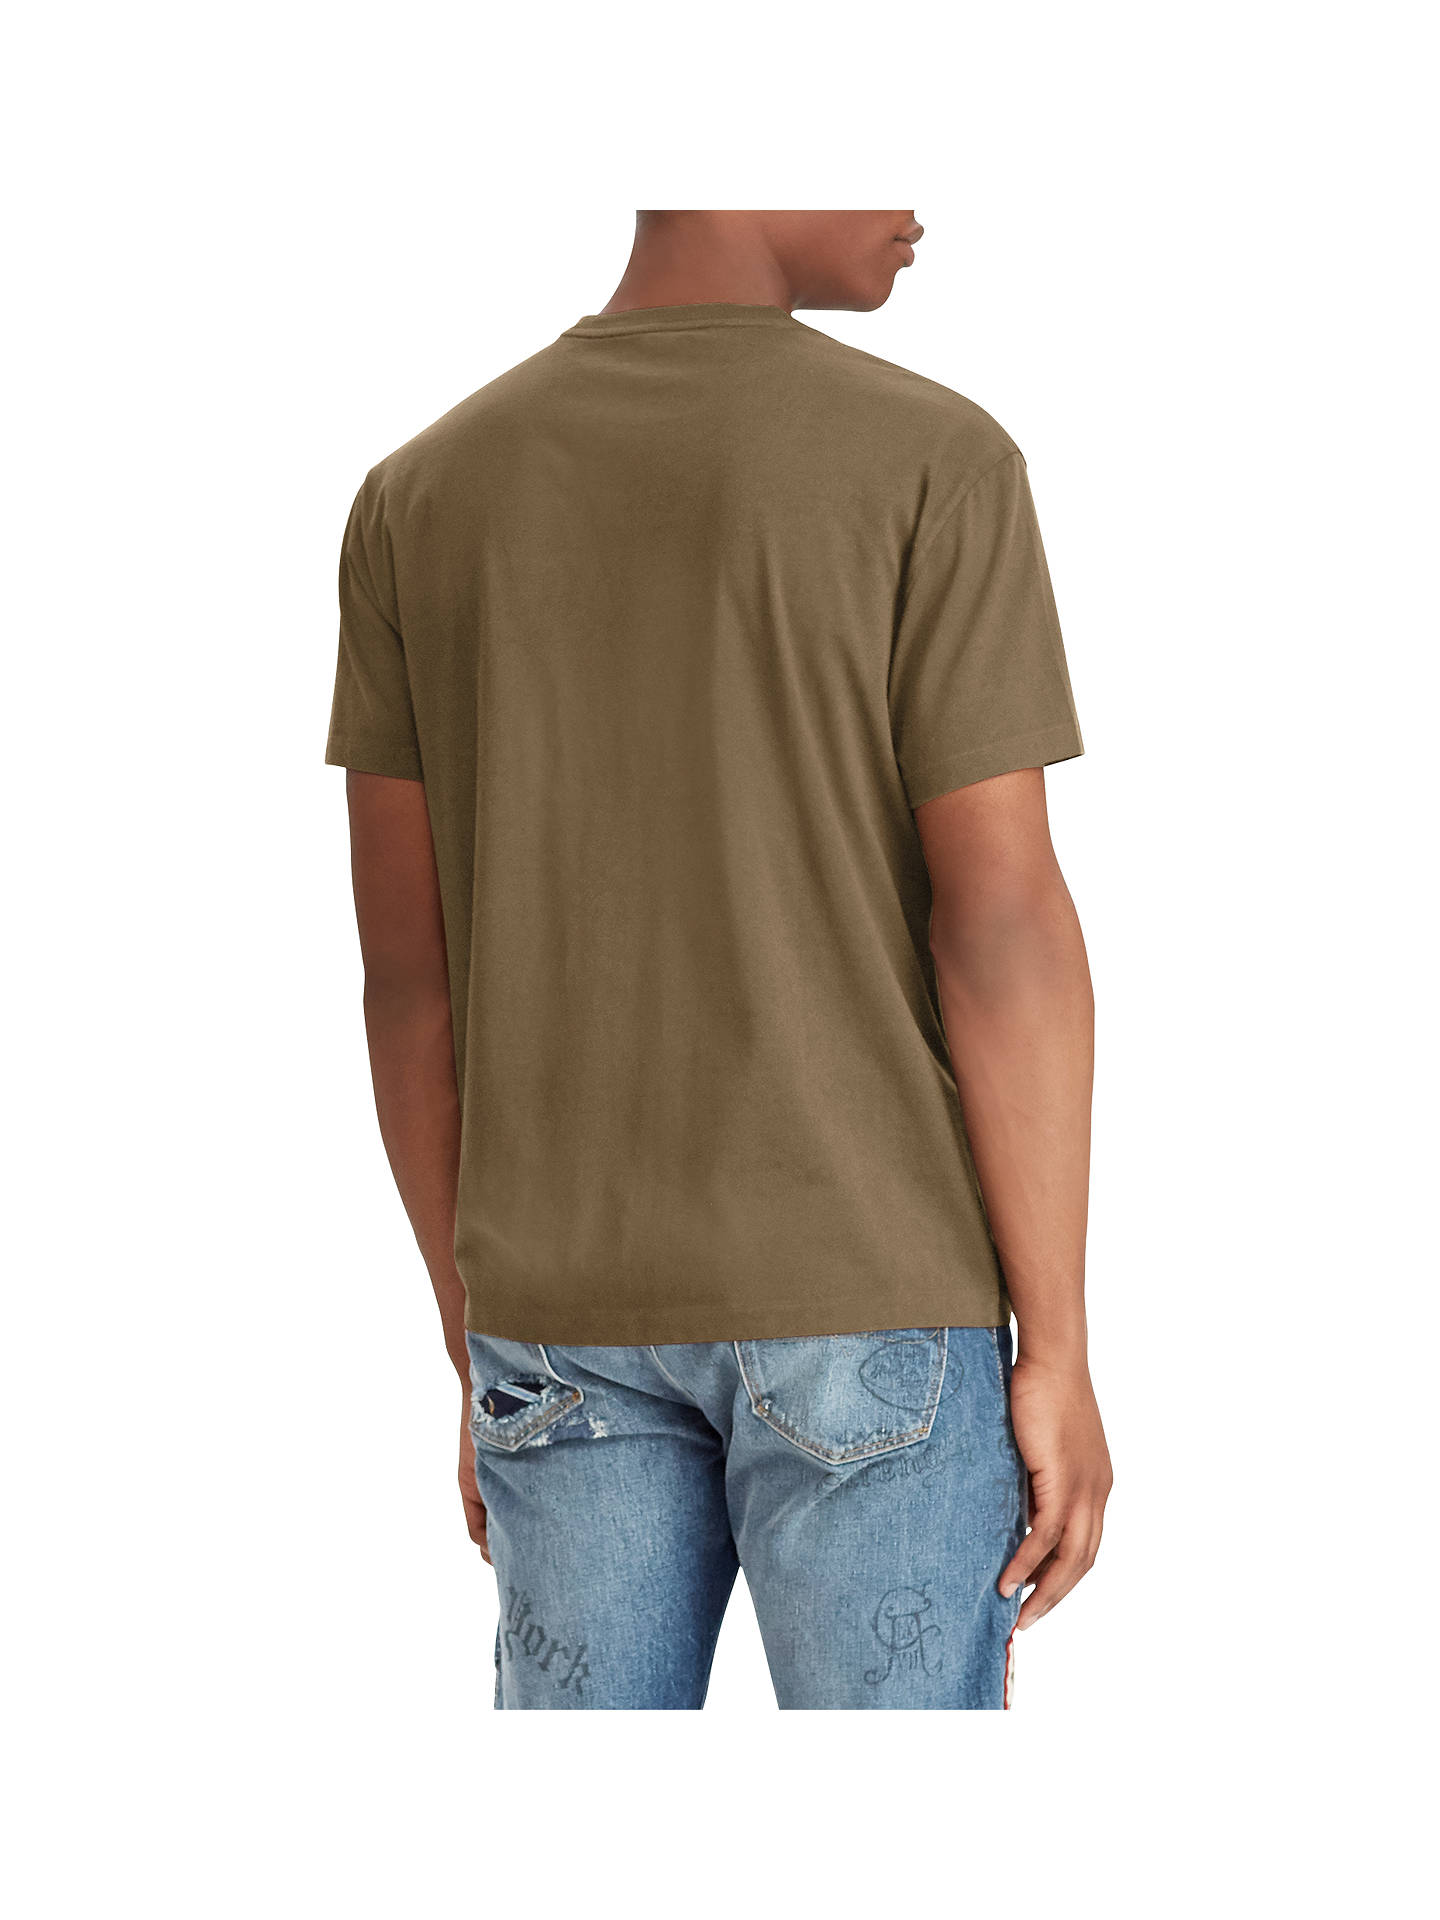 BuyPolo Ralph Lauren Crew Neck T-Shirt, Expedition Olive, S Online at johnlewis.com